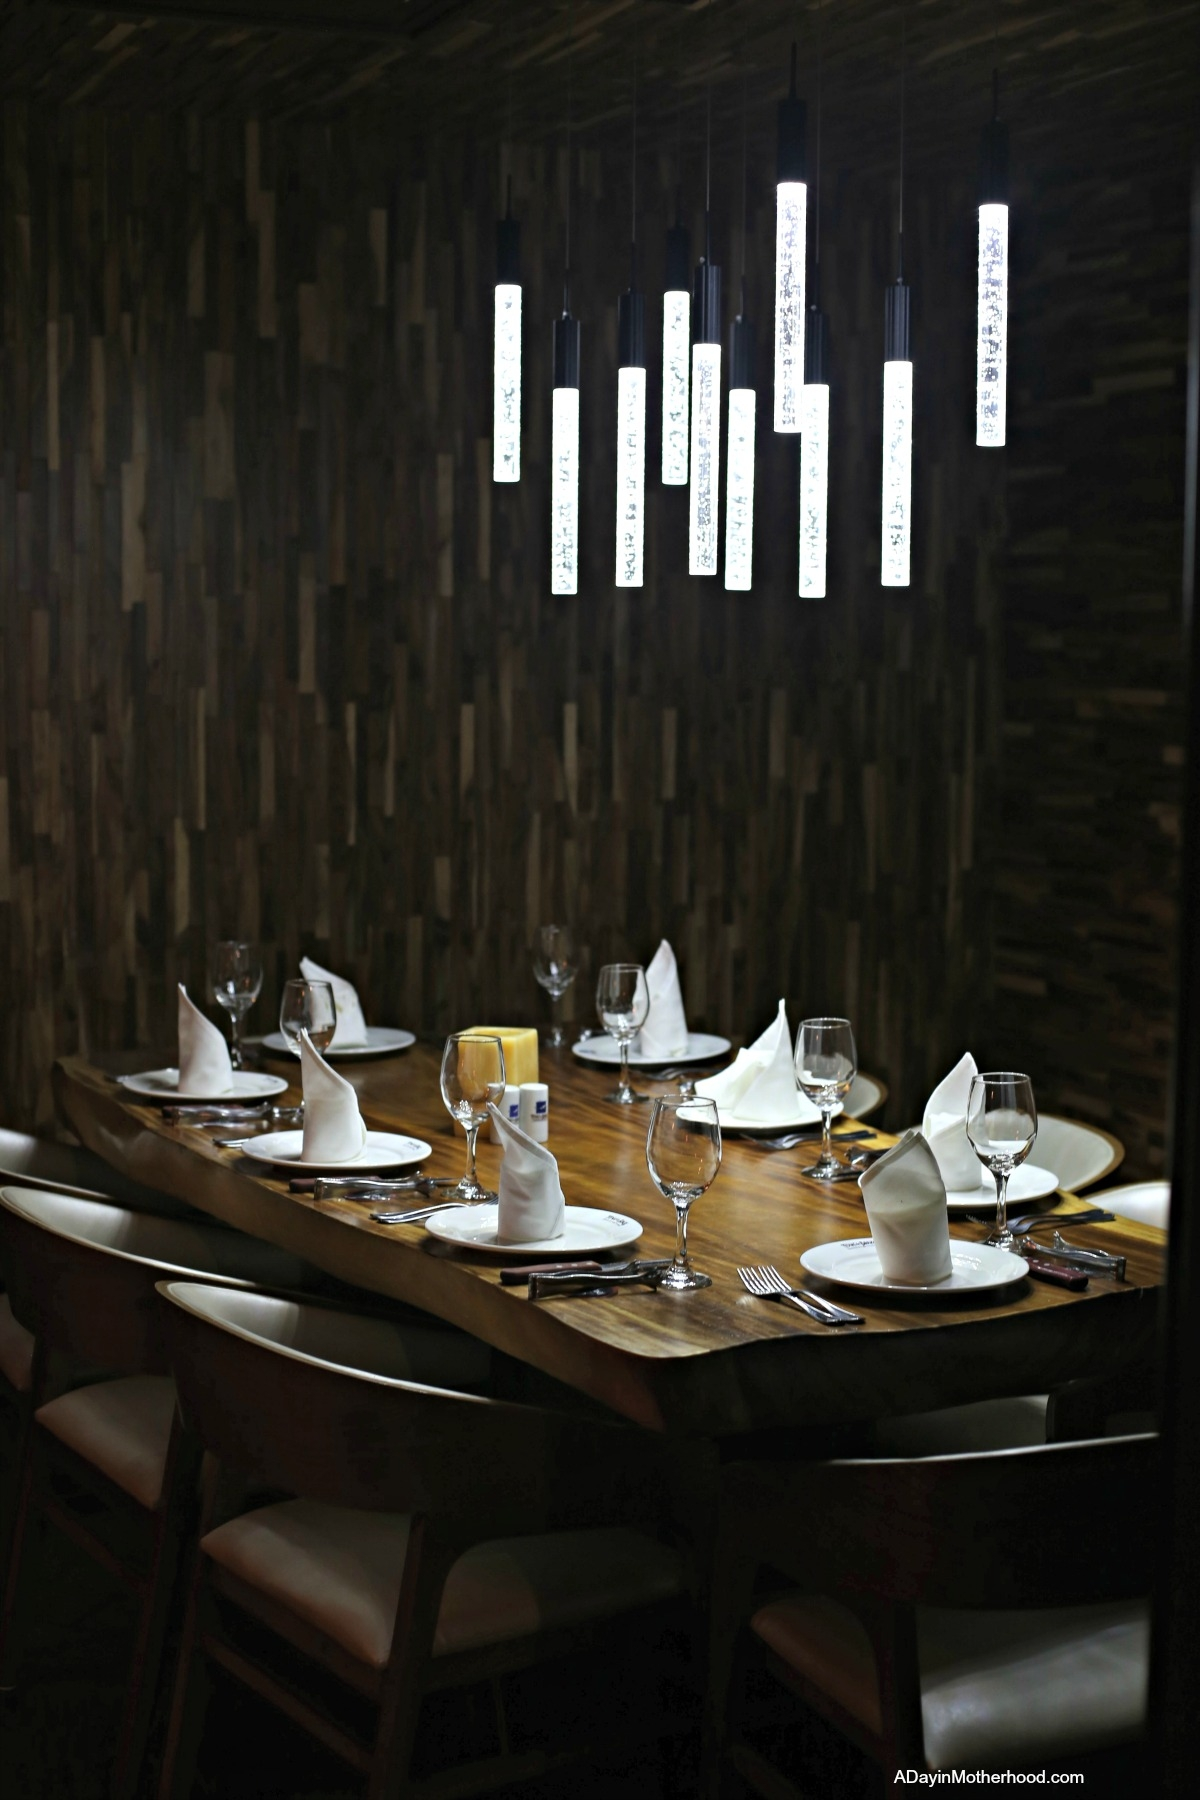 Relax & Celebrate with the Unique Flavors at Texas de Brazil with private rooms